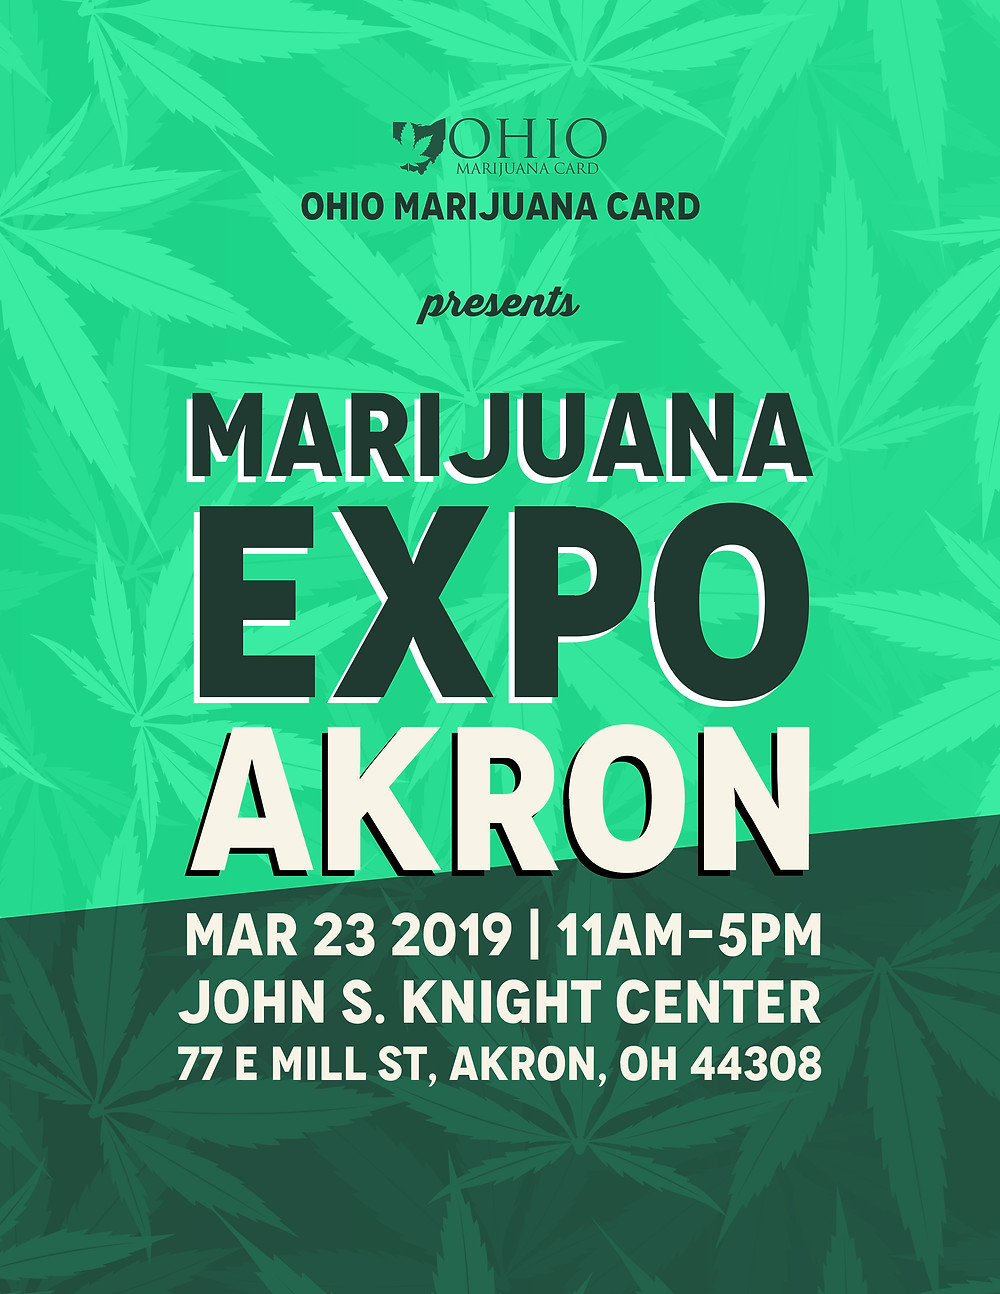 Ohio Marijuana Expo: Akron Promotional Flyer